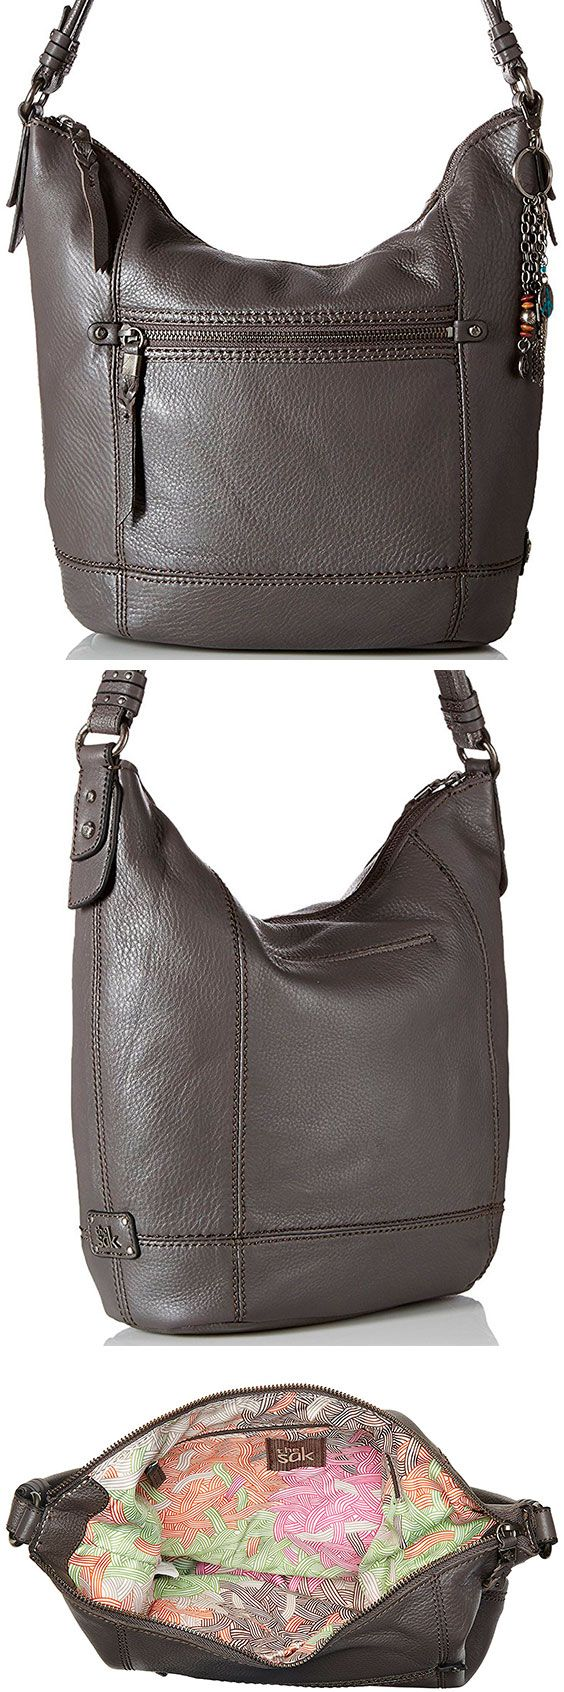 The Sak Sequoia Hobo Bag – Best Large Leather Hobo Shoulder Bag The Sequoia lives up to its namesake and comes in at a relatively large, inexpensive shoulder bag. With 11 styles to choose from, the right person will love the oversized design. #TheSAK #Leather #Baguette #Handbag #Hobo #ShoulderBag #Bag #Gray